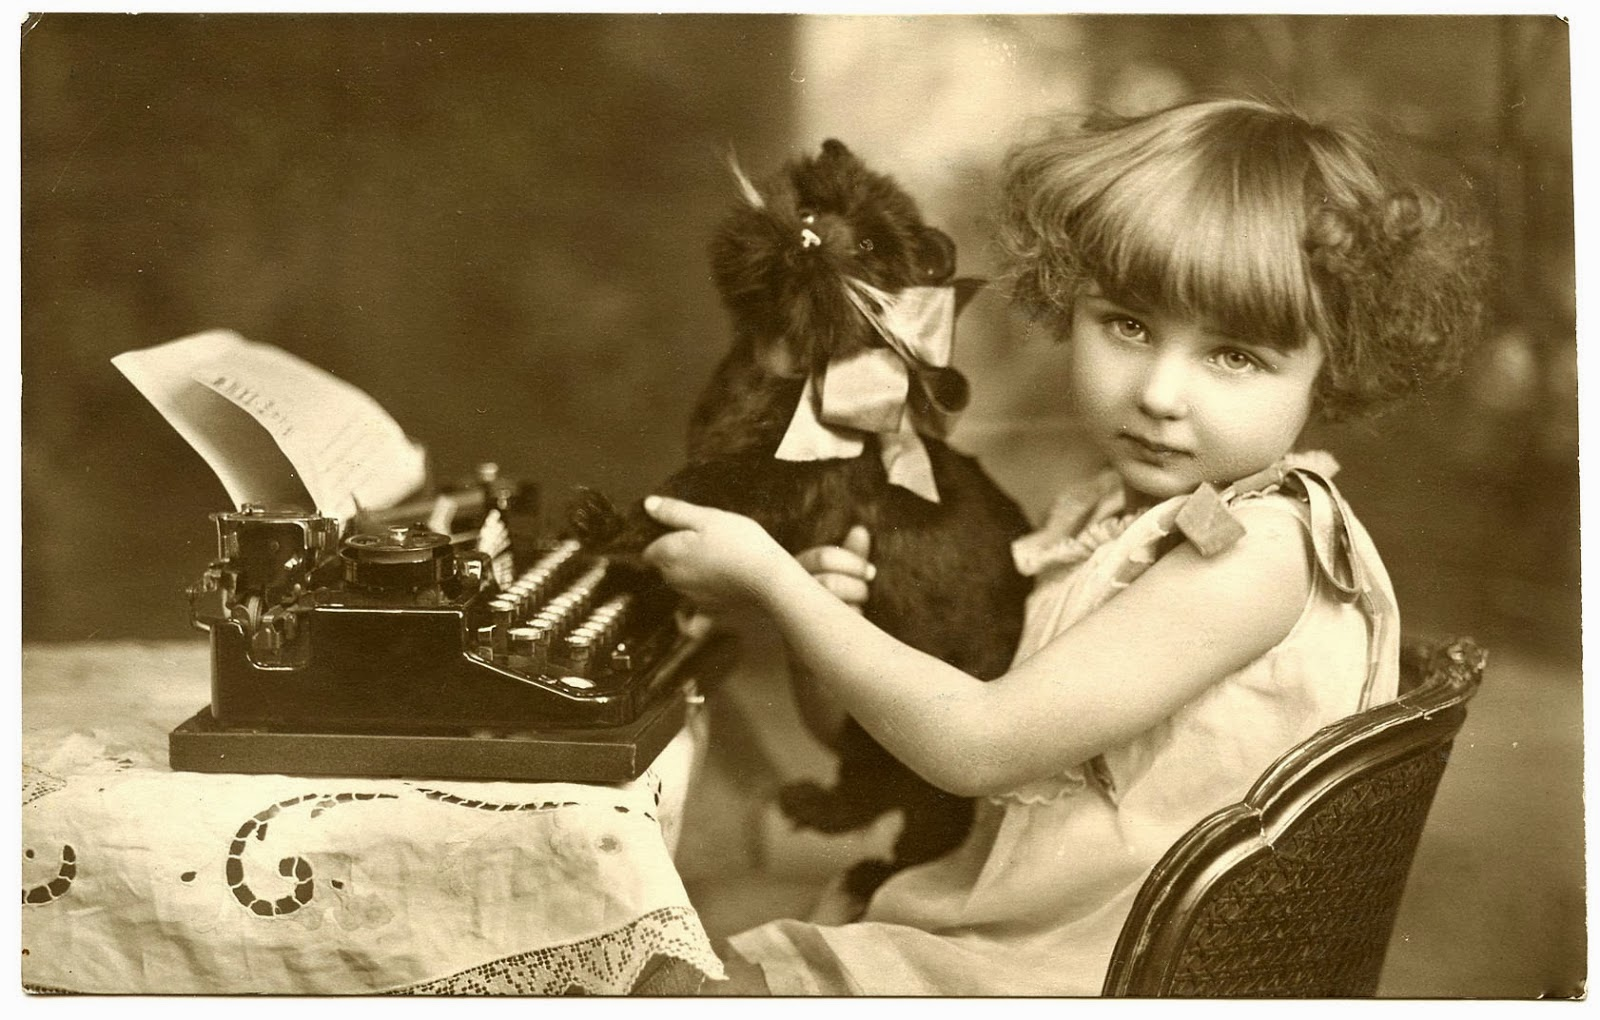 Vintage photo of young girl and a cat plushie at a typewriter.